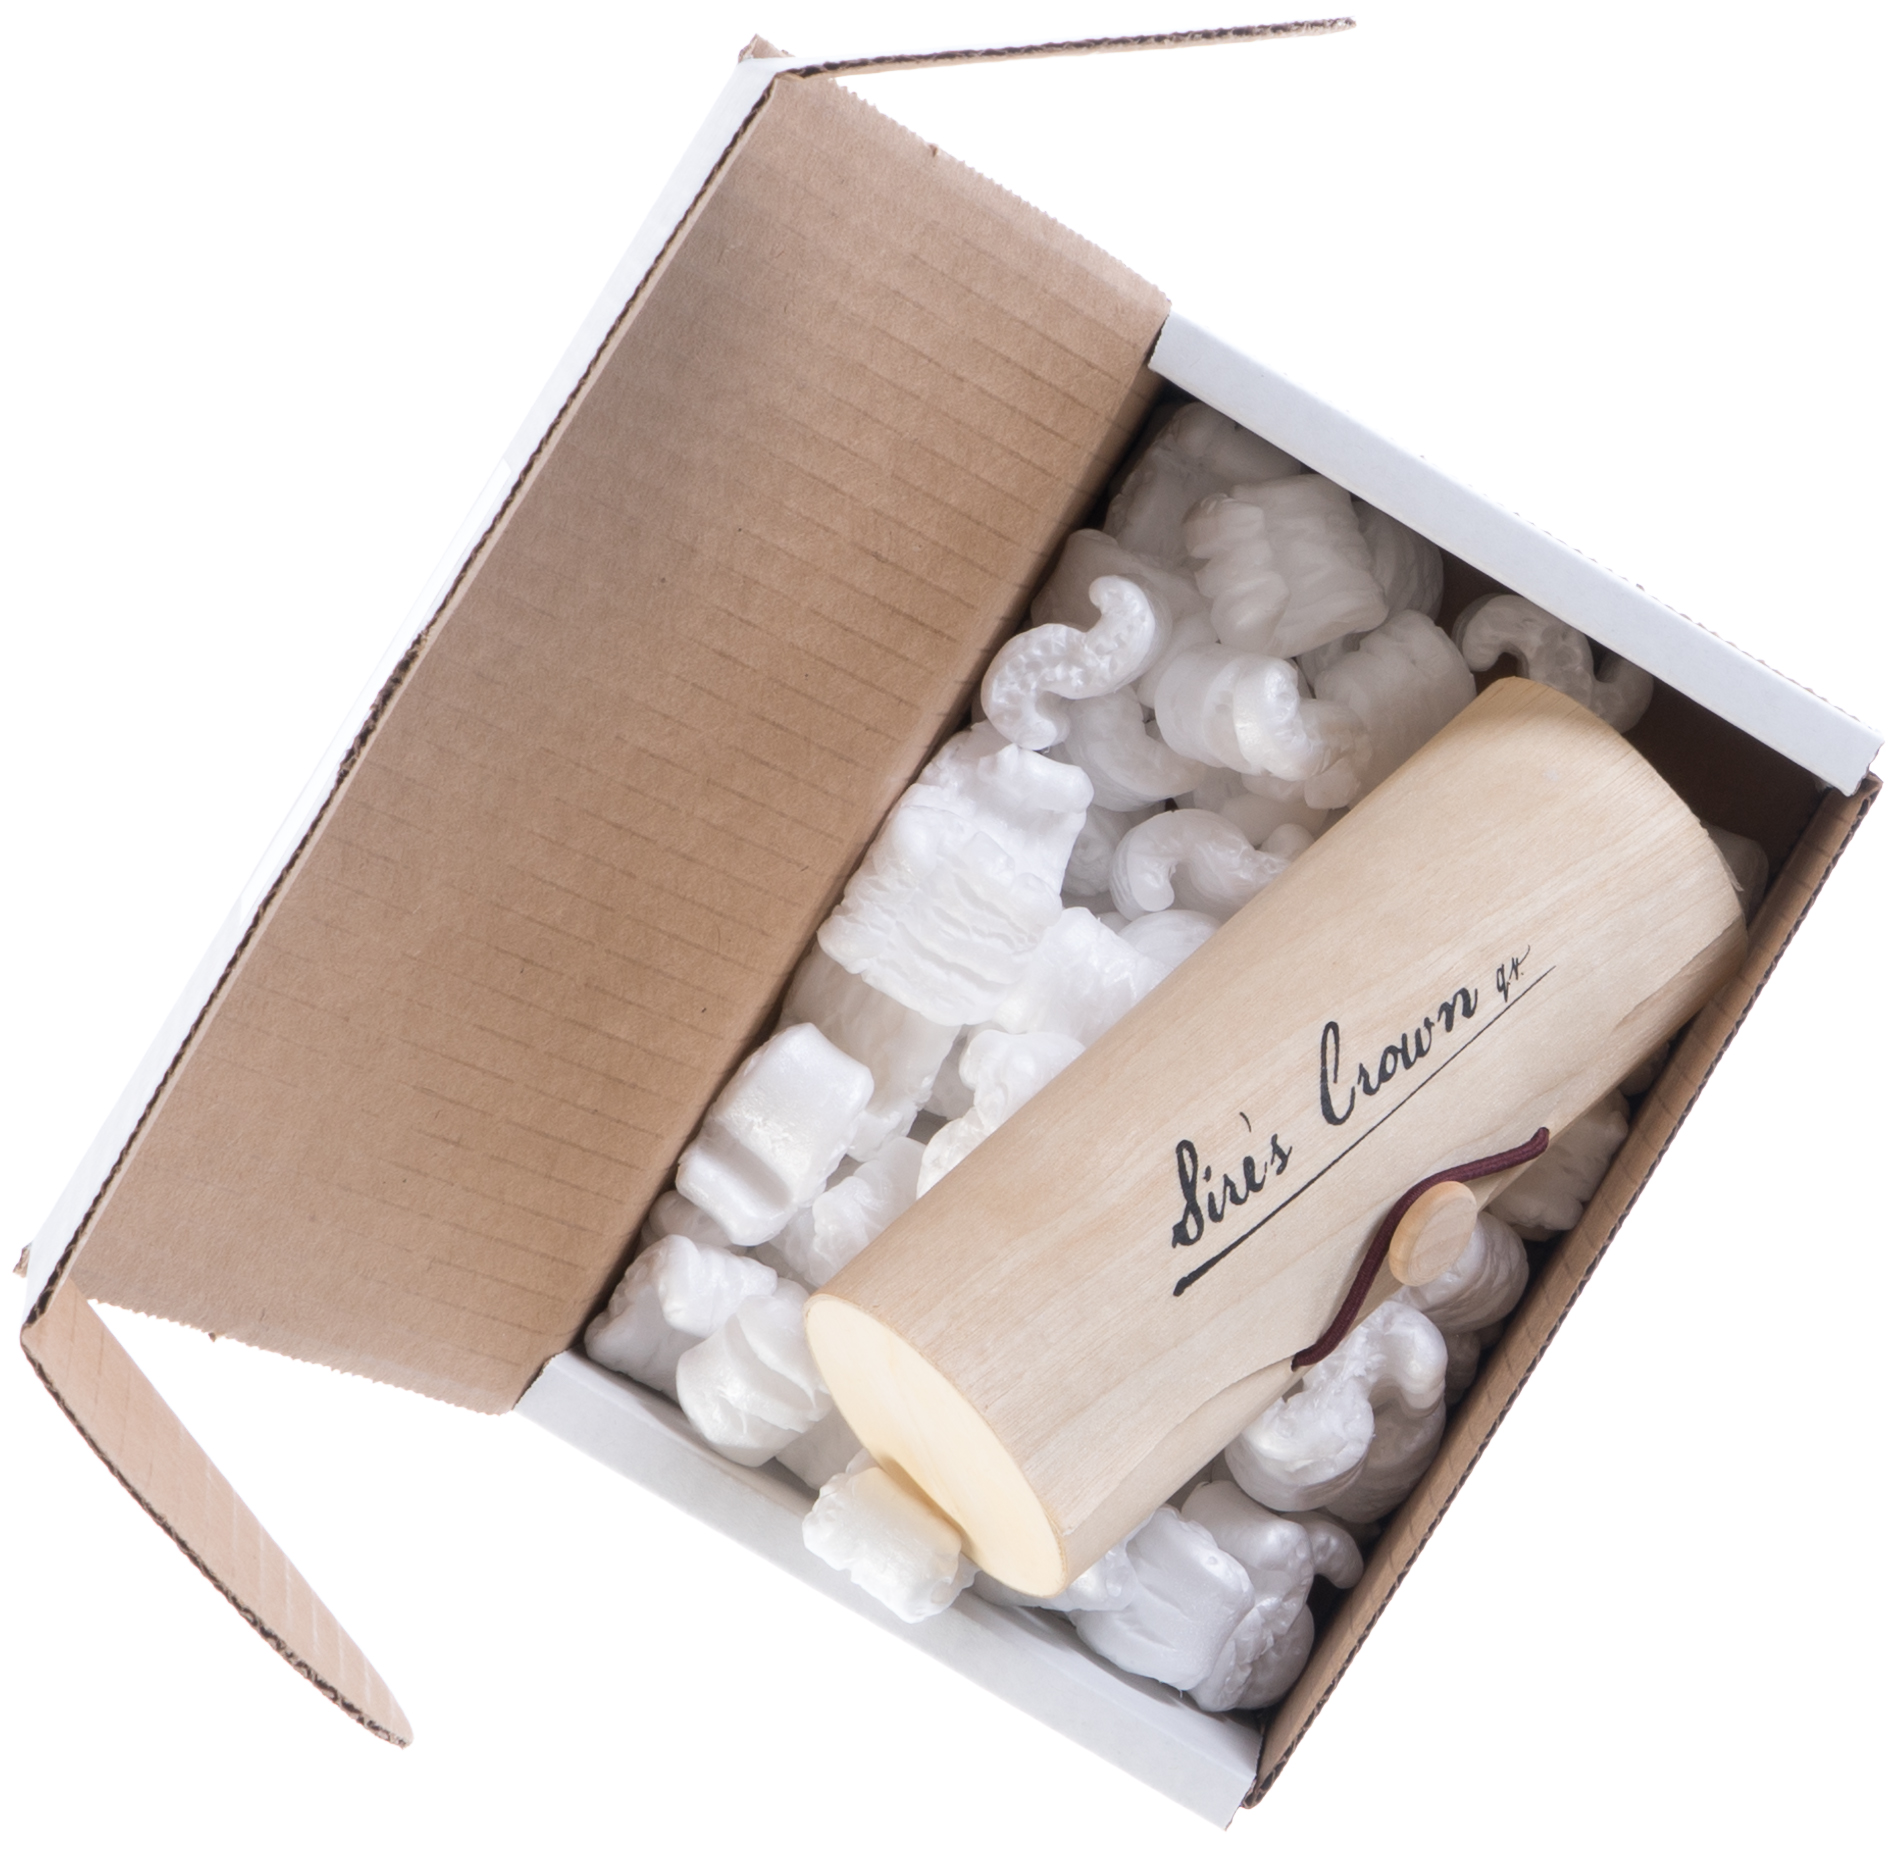 Shipping box of Sires Eyewear